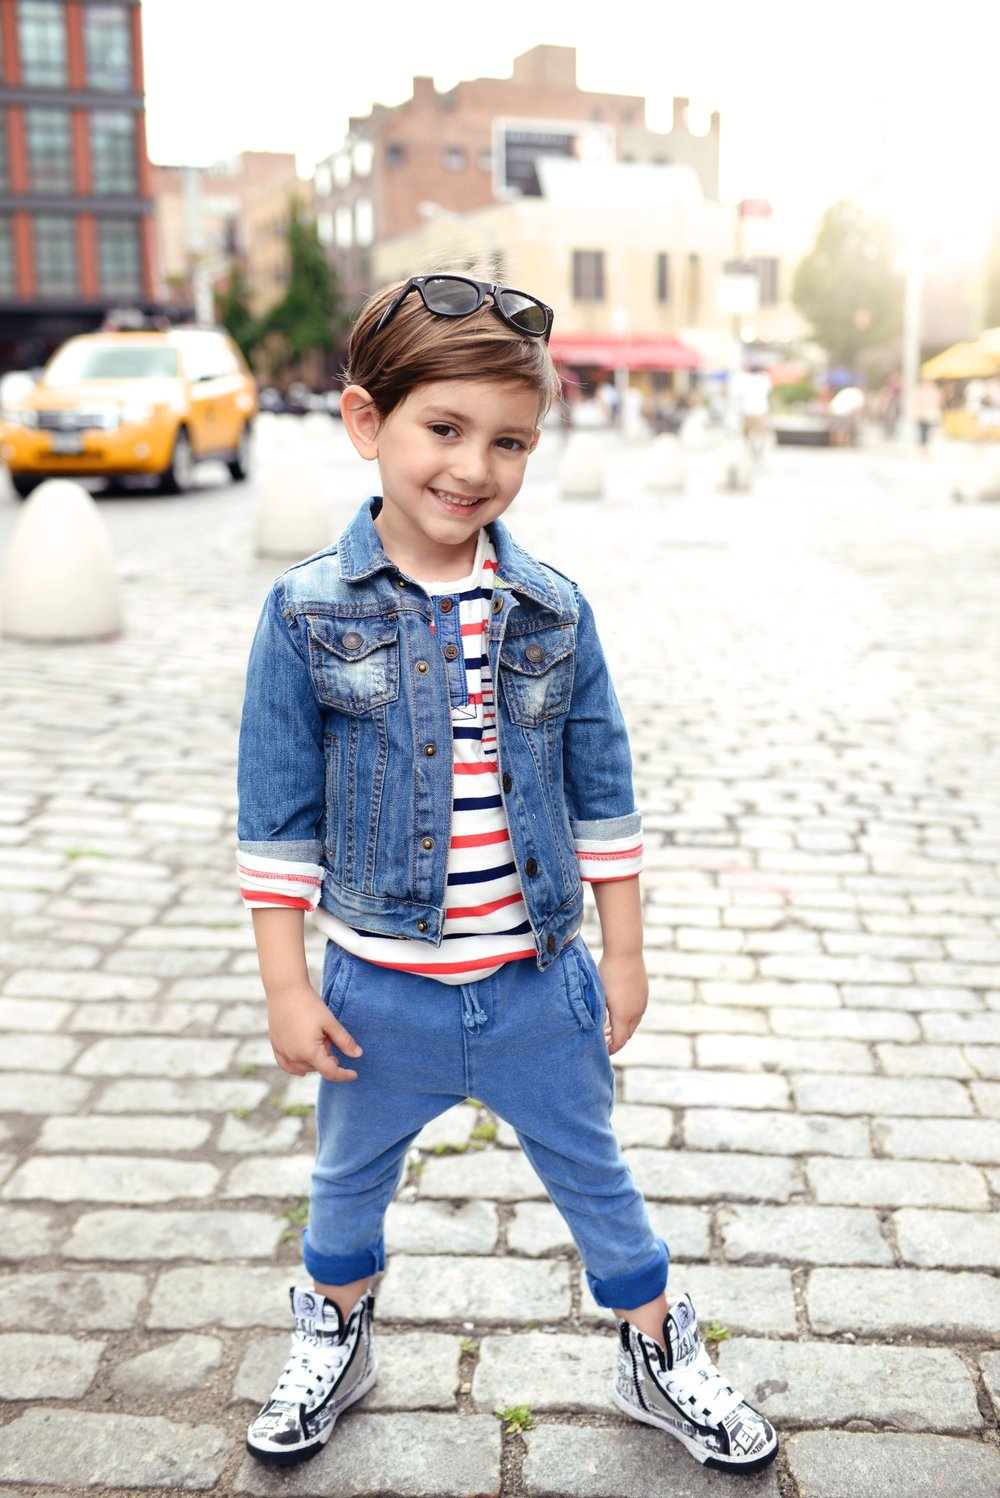 Enfant+Street+Style+by+Gina+Kim+Photography-63.jpeg